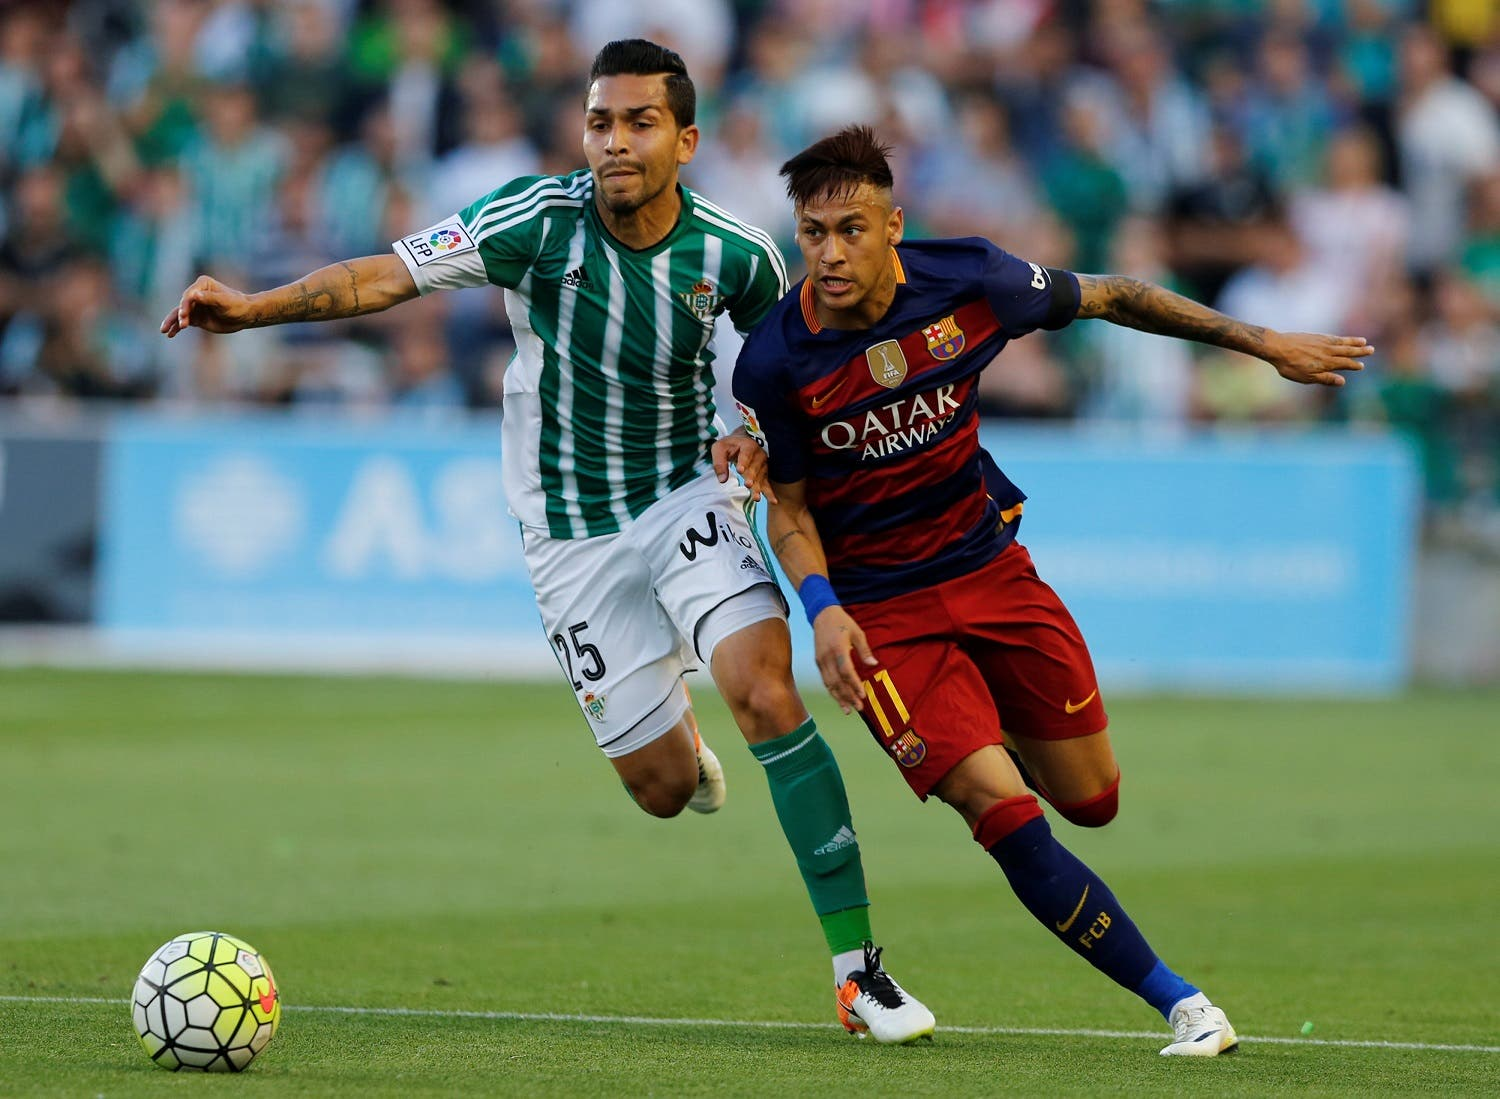 Barcelona's Neymar and Real Betis' Petros Araujo in action. REUTERS